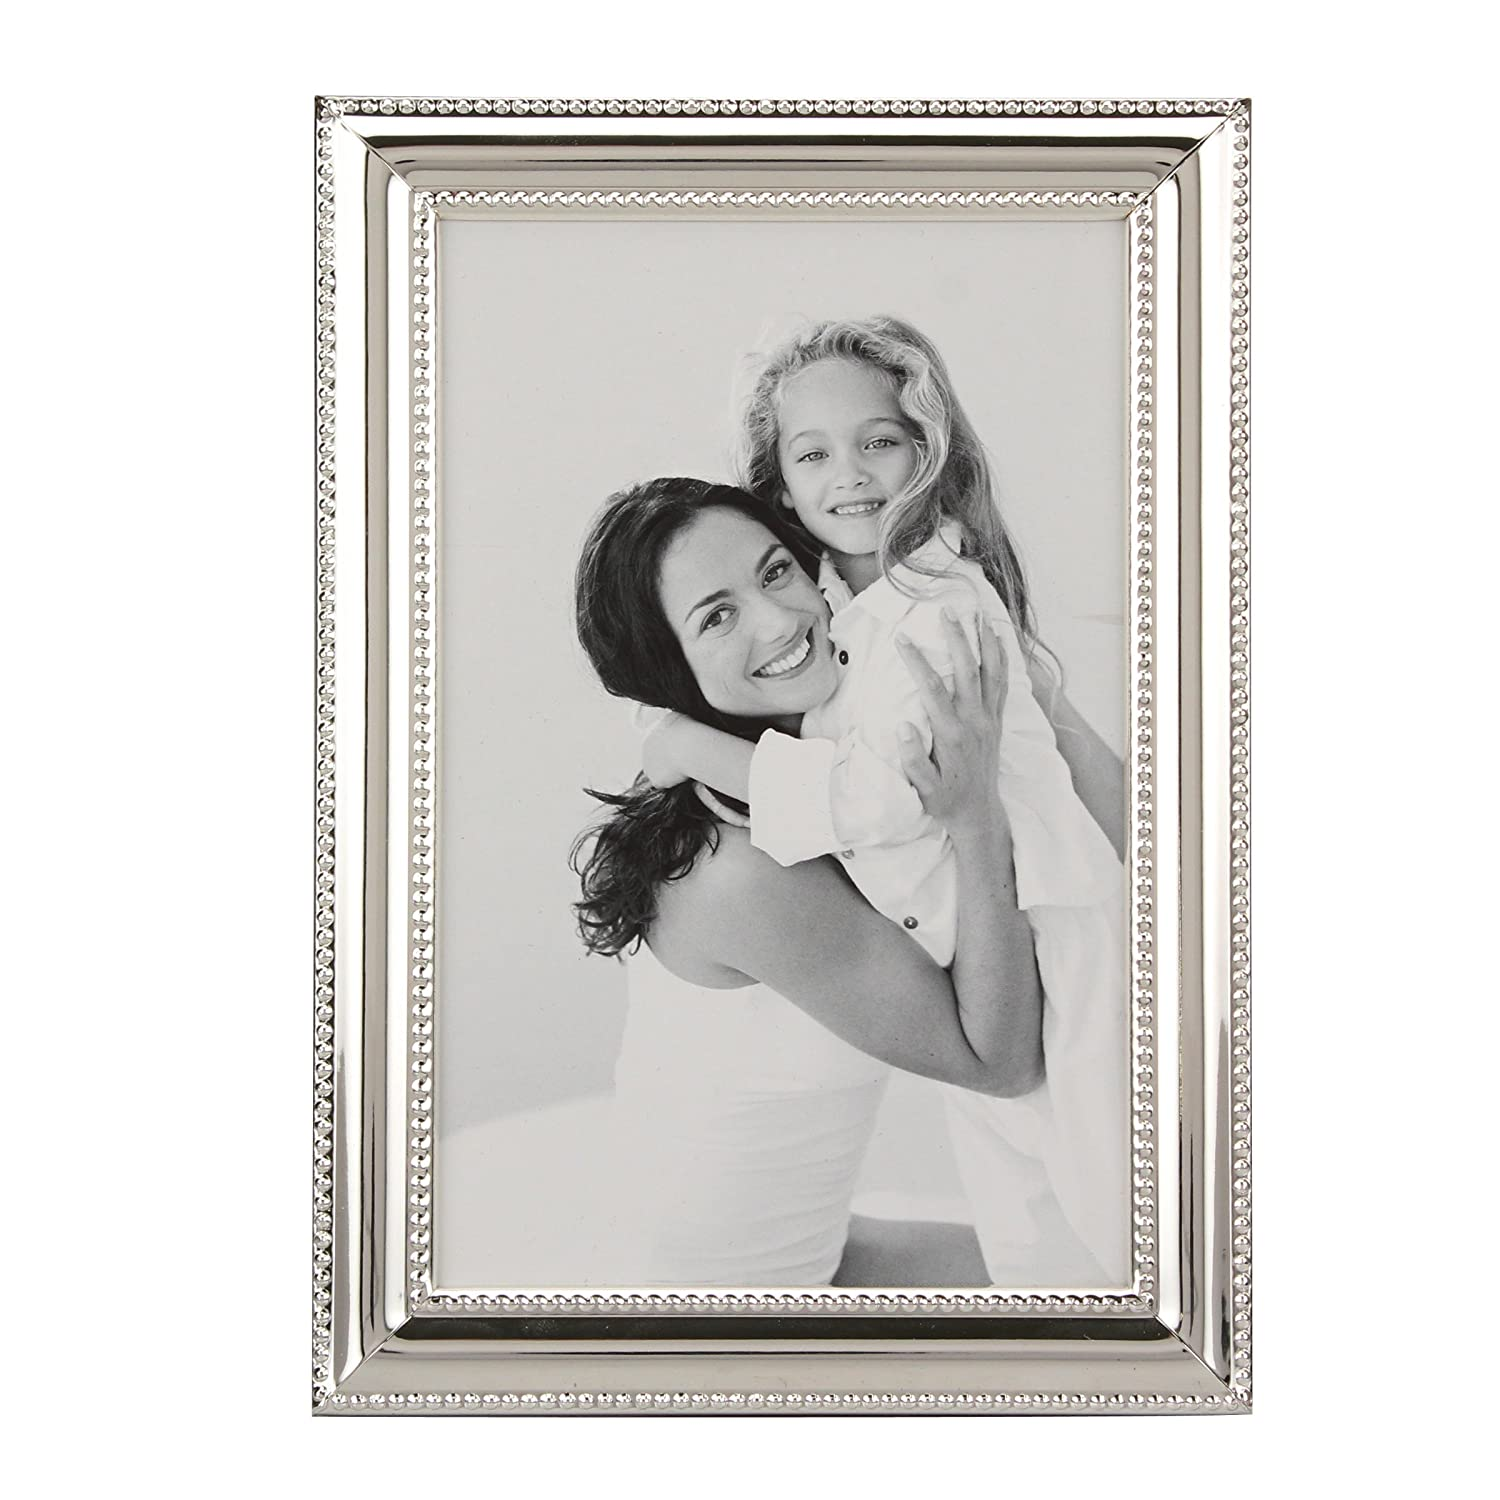 Stonebriar Decorative Silver Metal Photo Frame with Textured Border and Easel Back Stand, Elegant Wedding Picture Frame, Gift Idea for Engagements, Birthdays, and Anniversaries, 4x6 CKK Home Décor SB-J32146